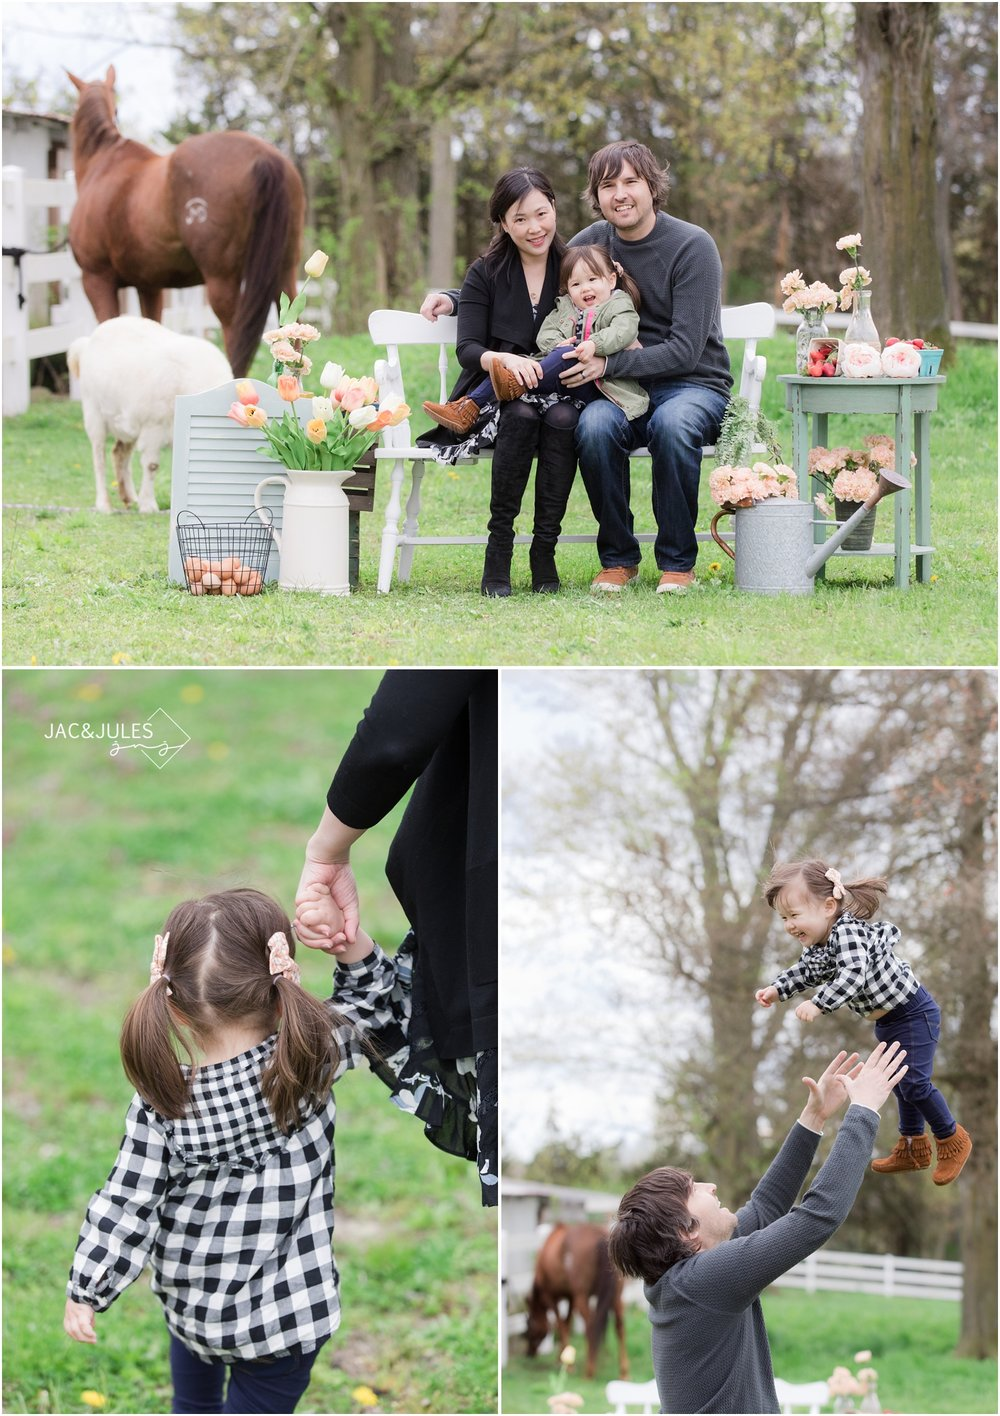 playful family photos at the horse farm in nj